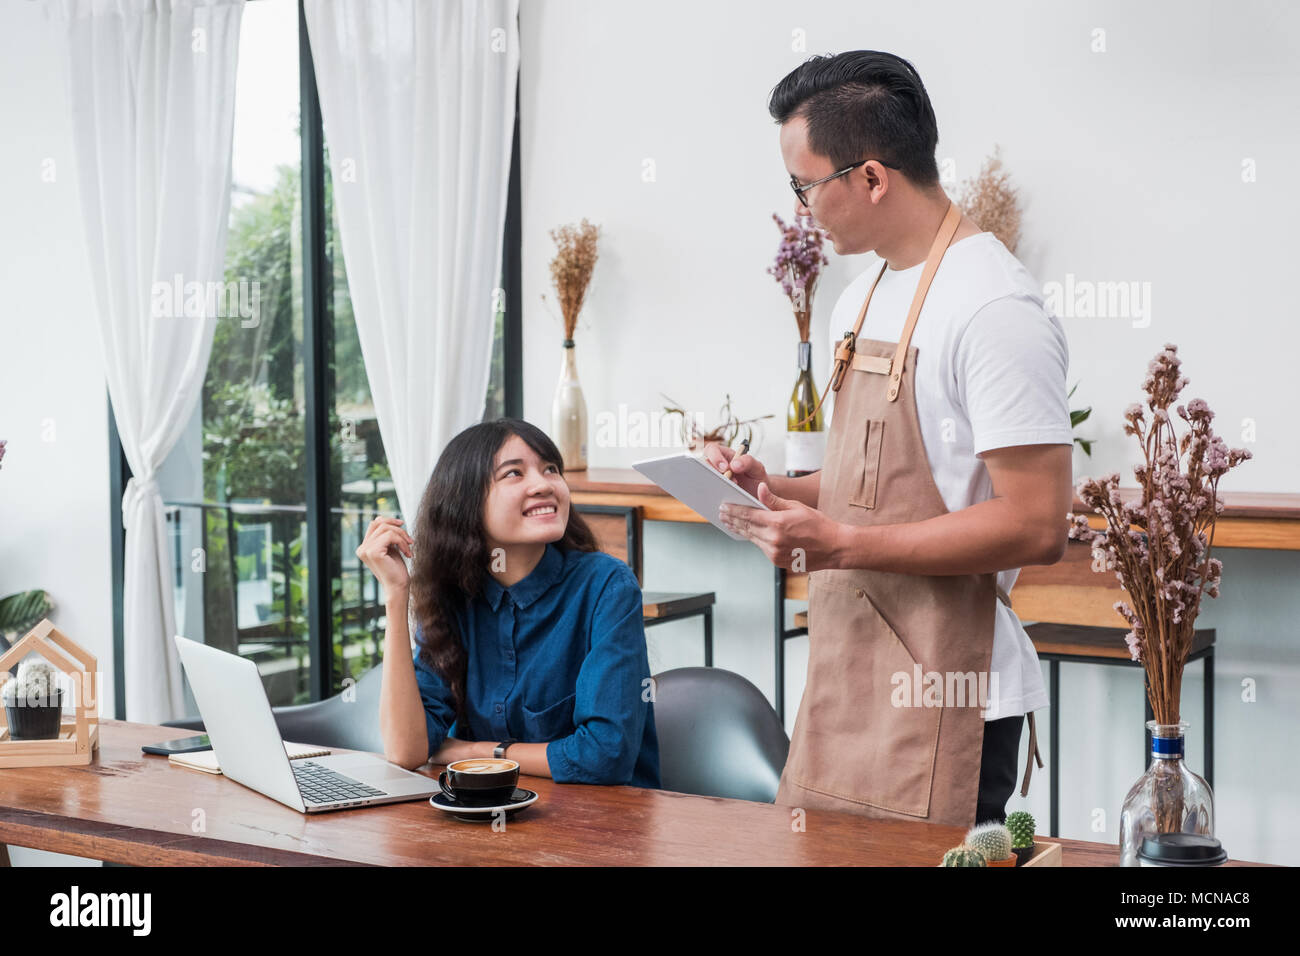 Asia Barista Waiter Use Tablet Take Order From Customer In